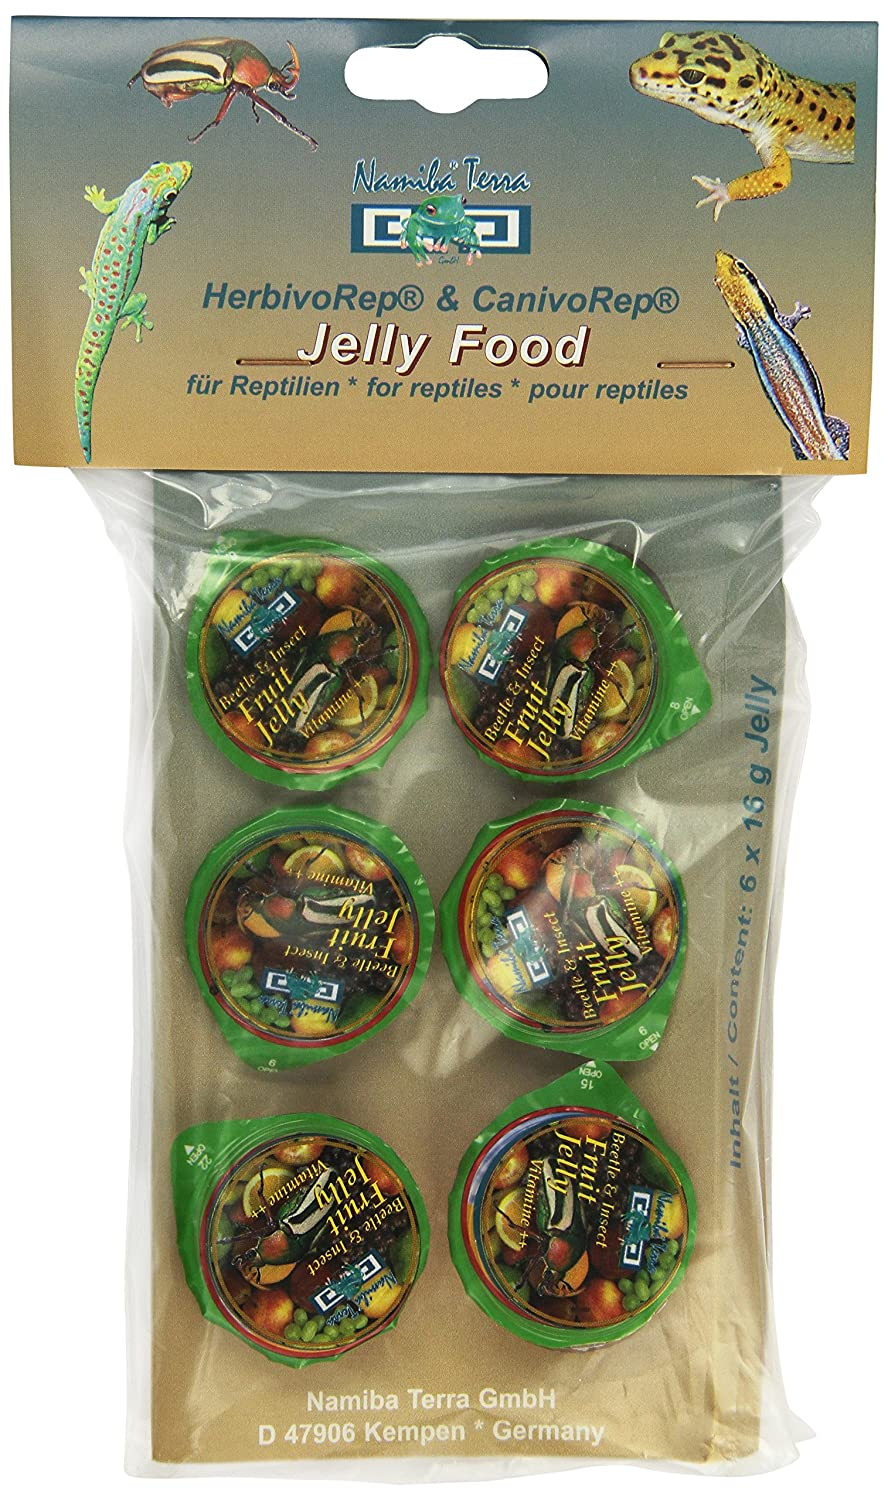 Namiba Terra 0289 Beetle und Insect Vitamin-Frucht Jellylarge, 6-er Pack